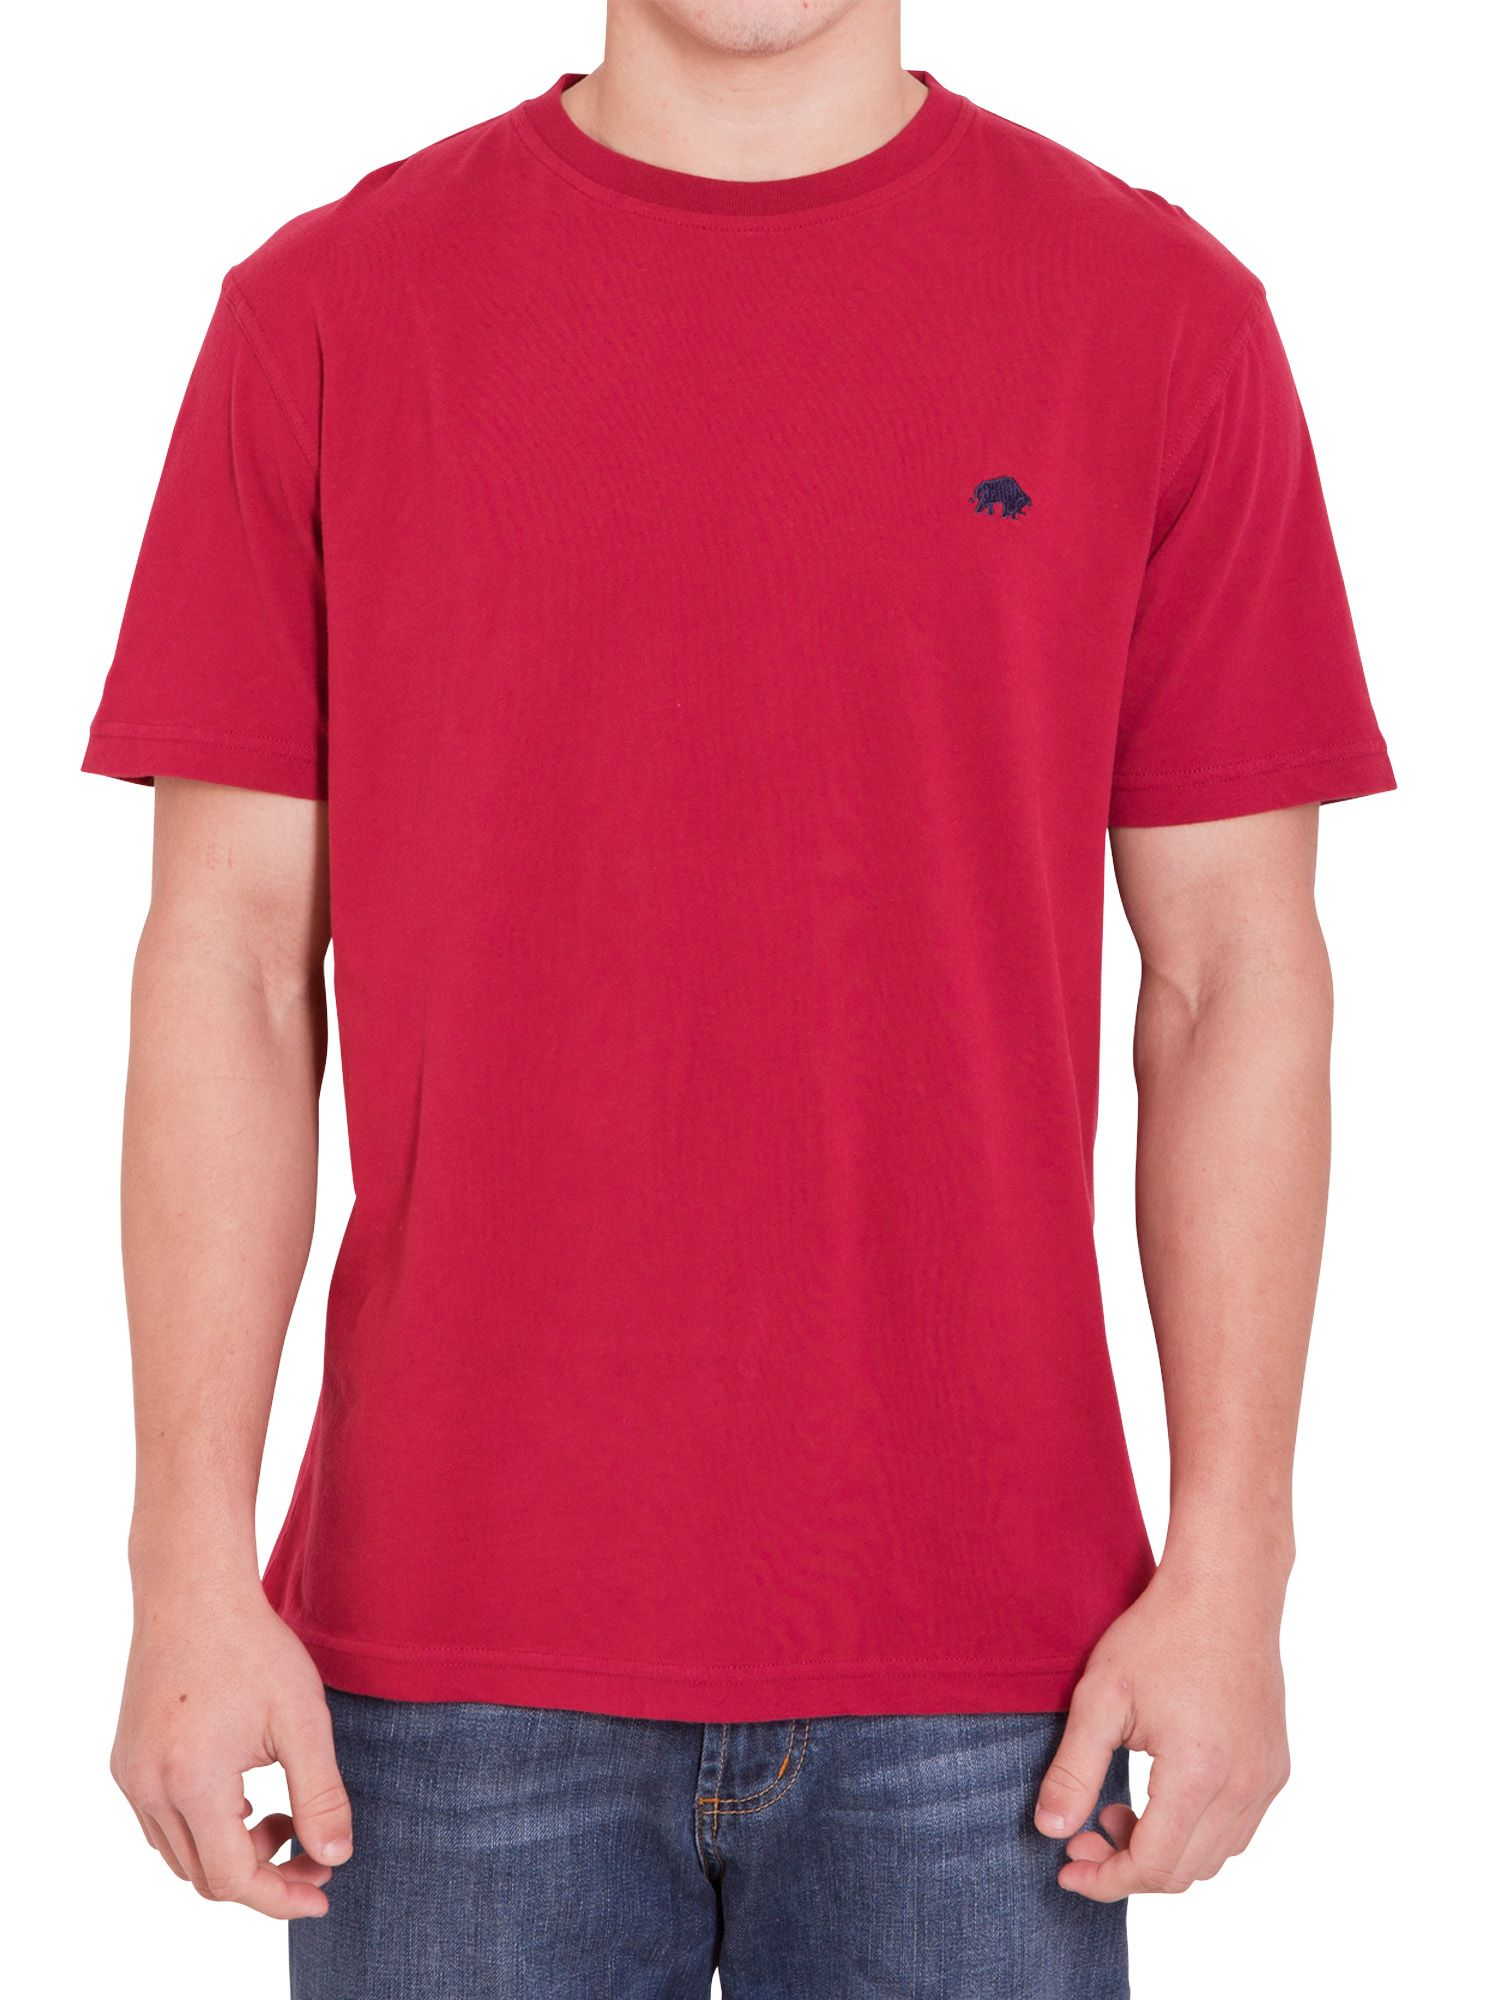 Raging Bull Mens Raging Bull Classic t-shirt, Red product image